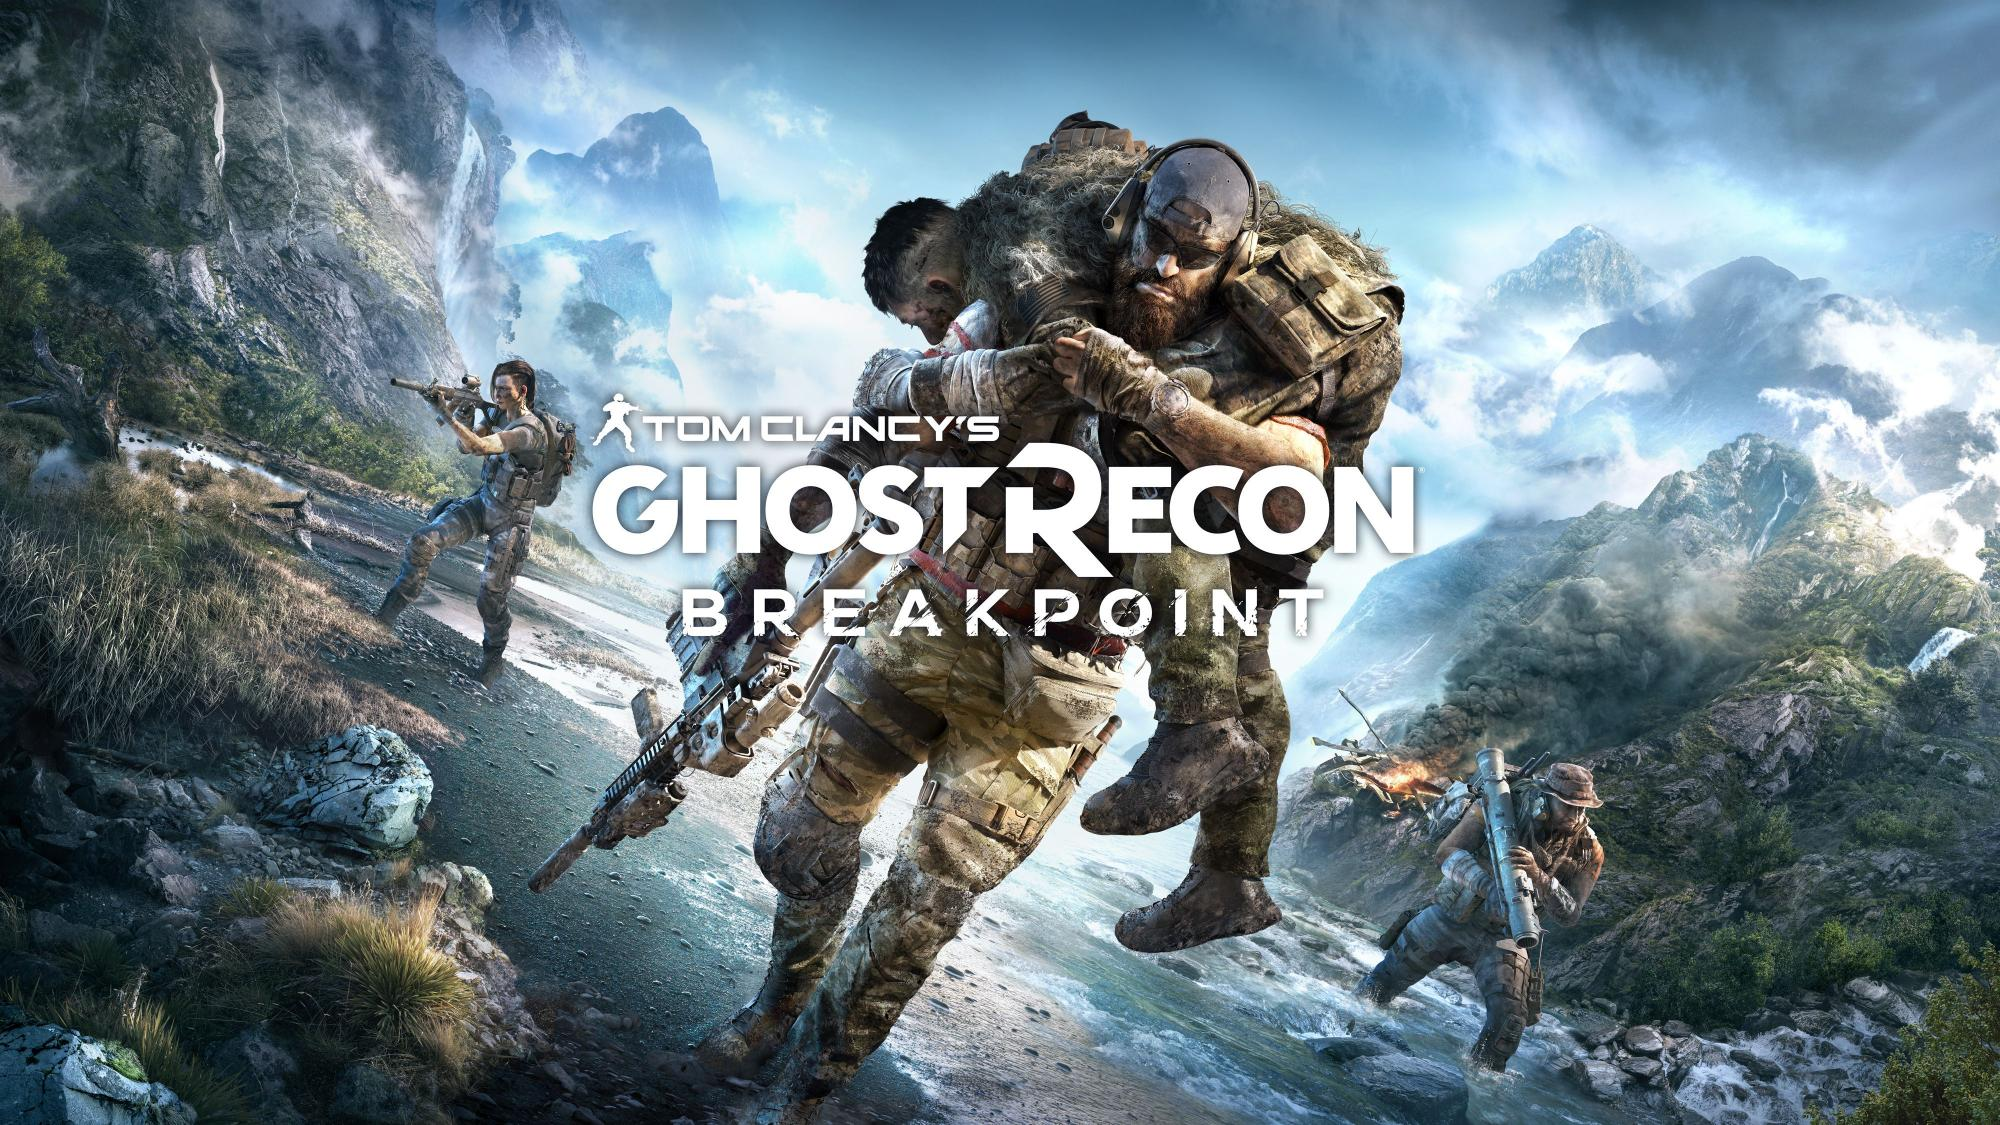 Video / Trailer: Tom Clancy's Ghost Recon: Breakpoint